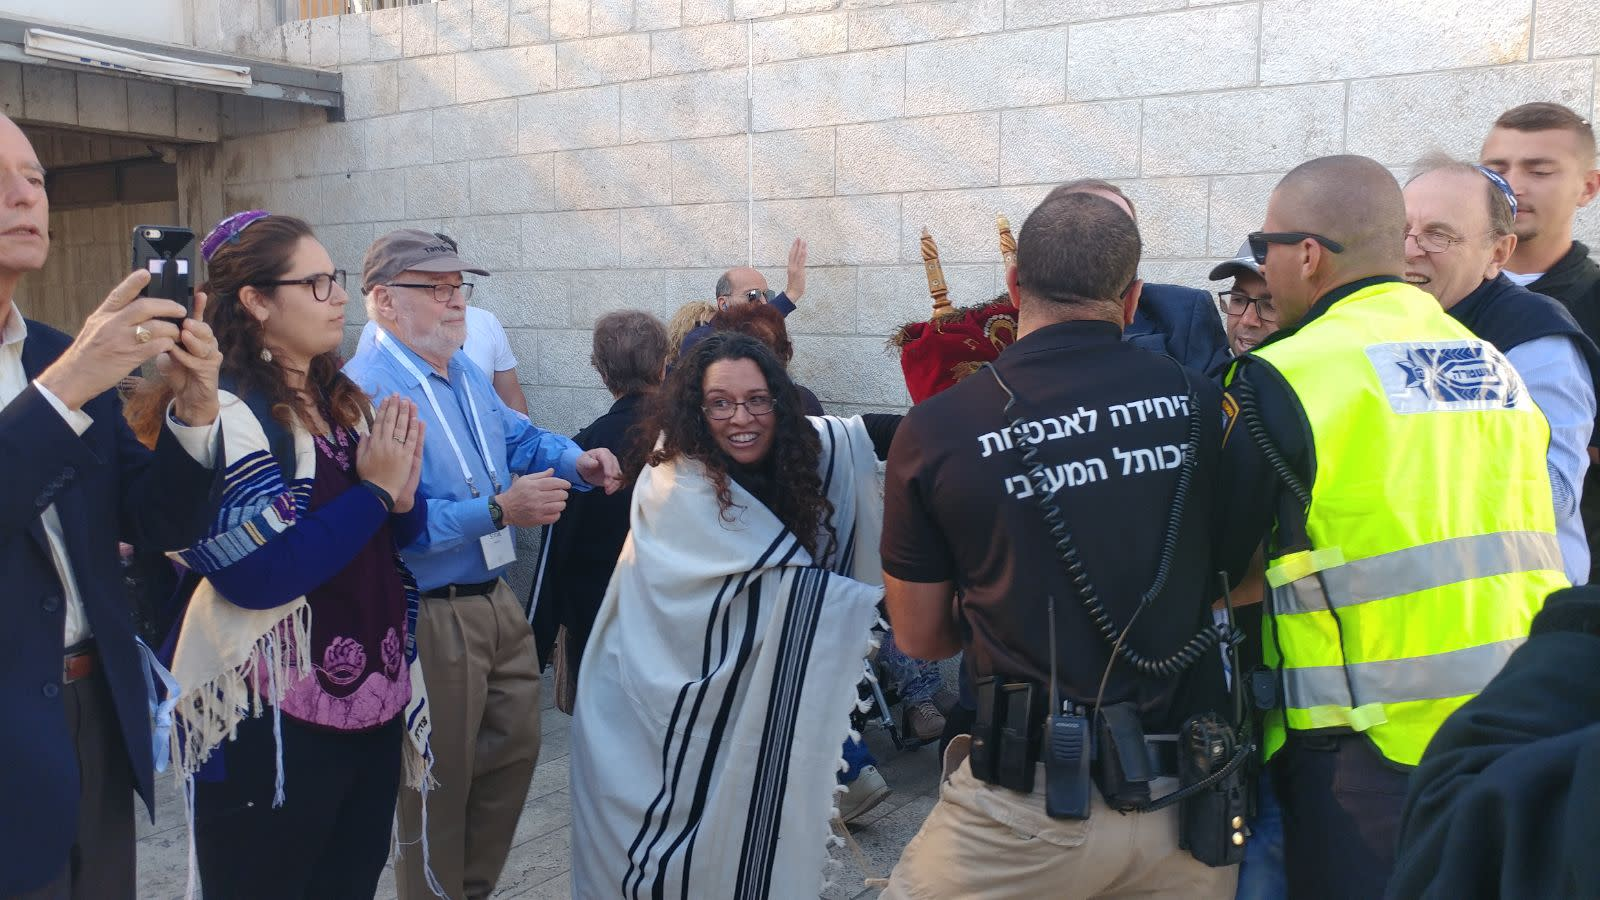 Security guards restrain Reform rabbis from entering the Western Wall complex on November 16th.